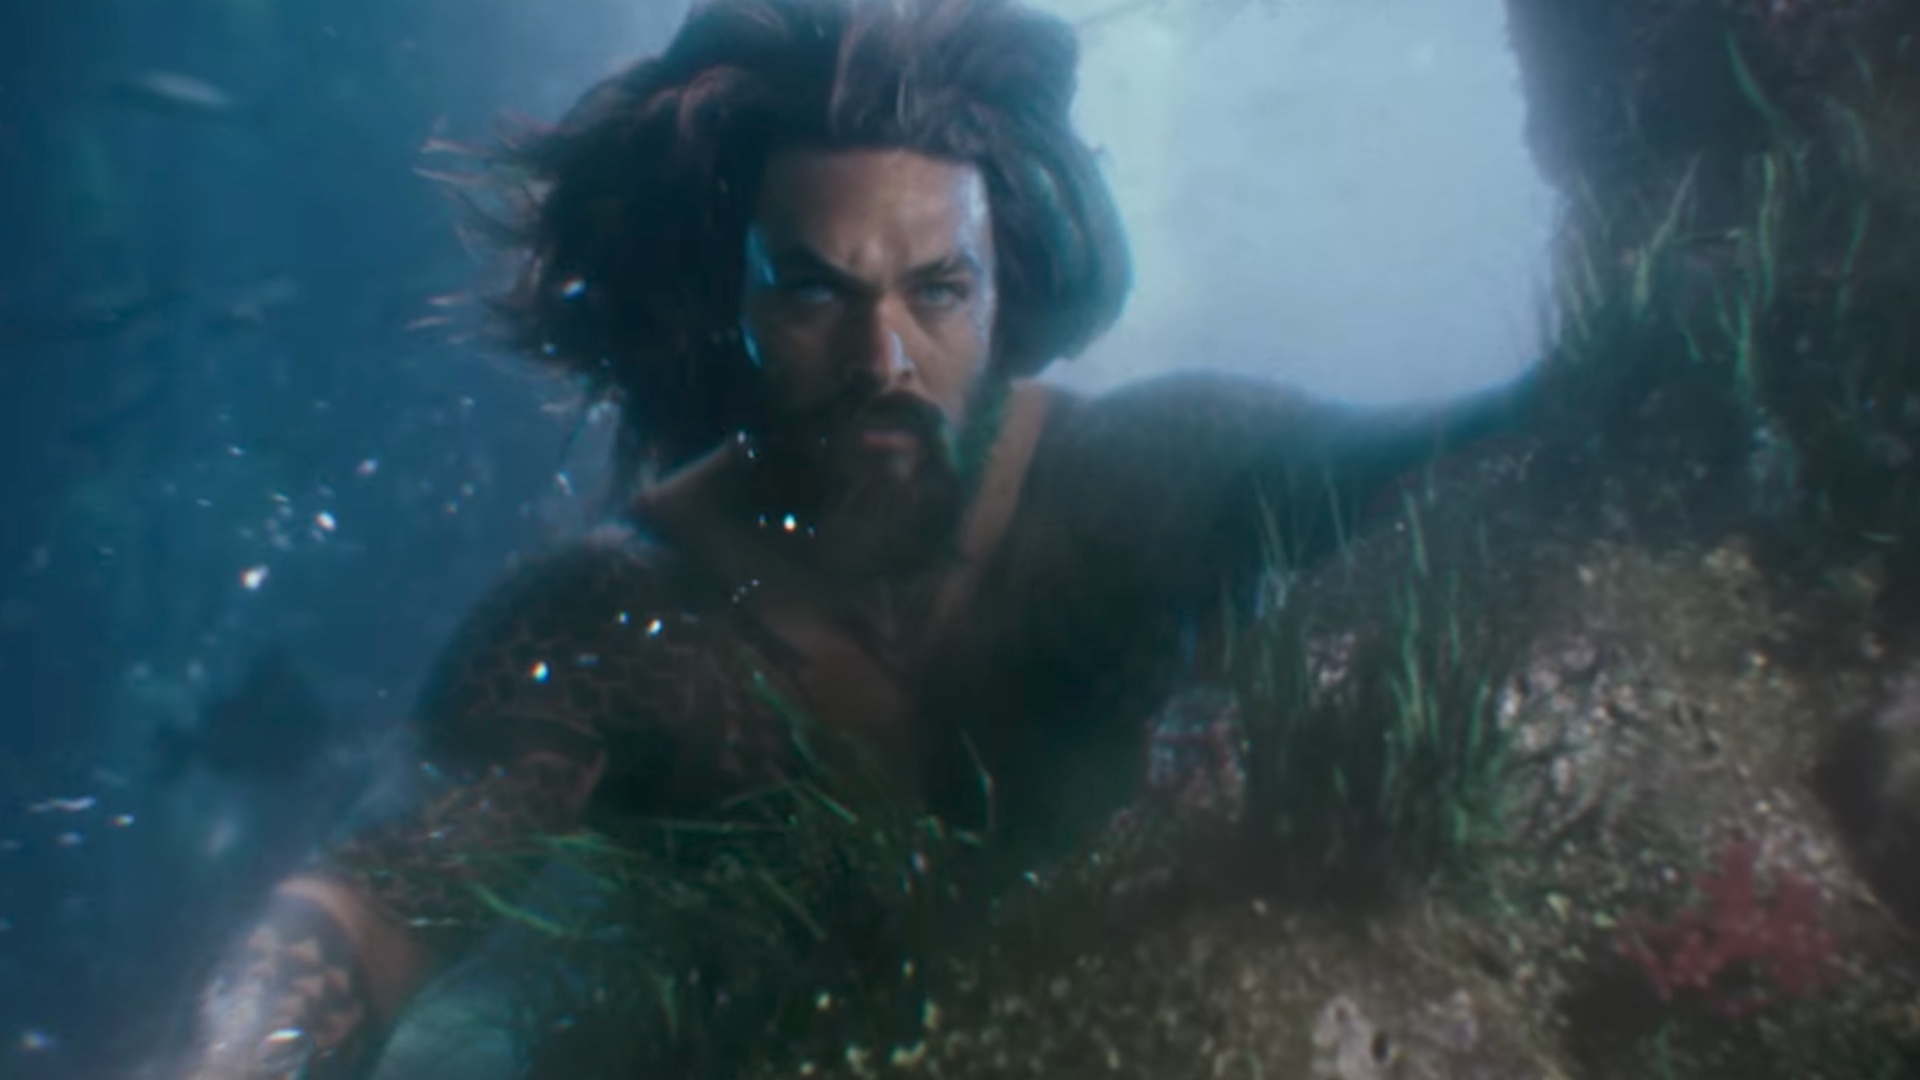 jason-momoa-reveals-new-details-about-aquaman-and-his-gigantic-story-arc-social.jpg